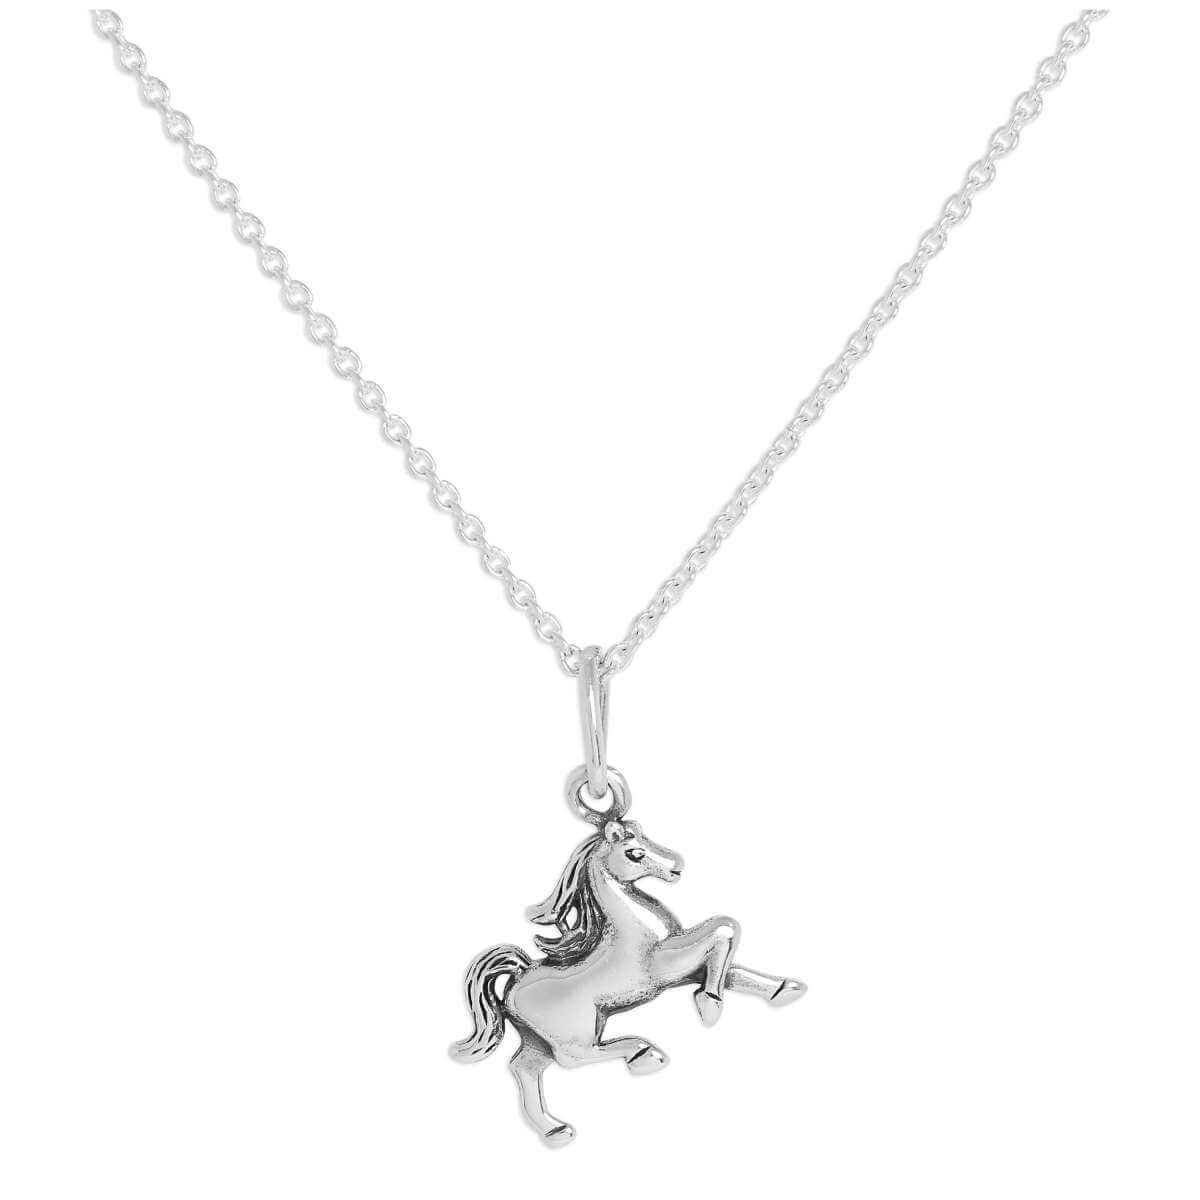 Sterling Silver Walking Horse Pendant Necklace 16 - 24 Inches